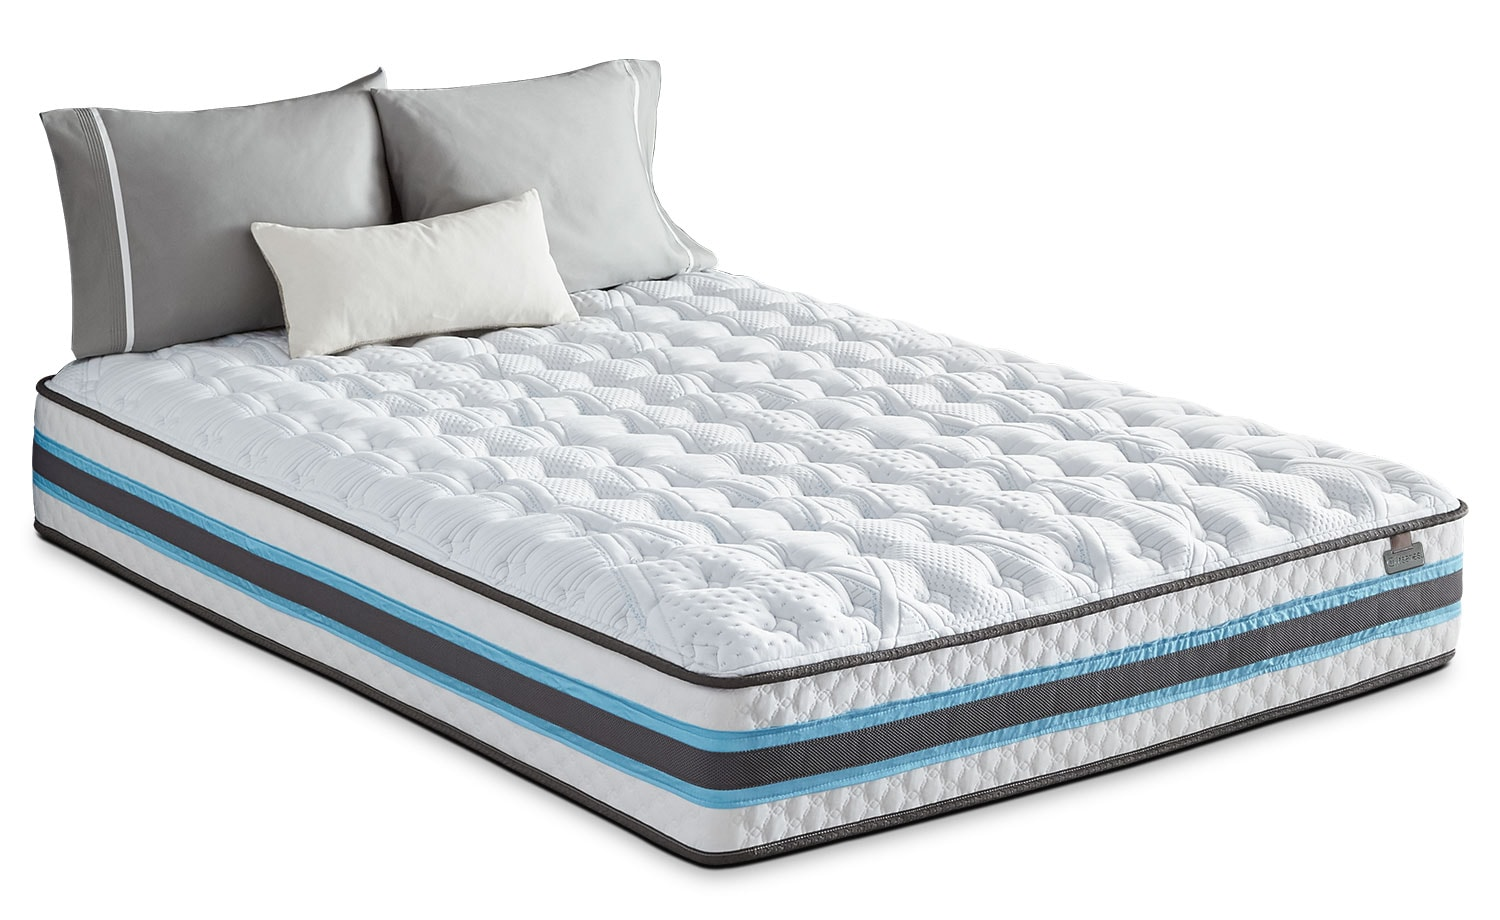 Serta iSeries® Atmosphere Tight-Top Firm Queen Mattress